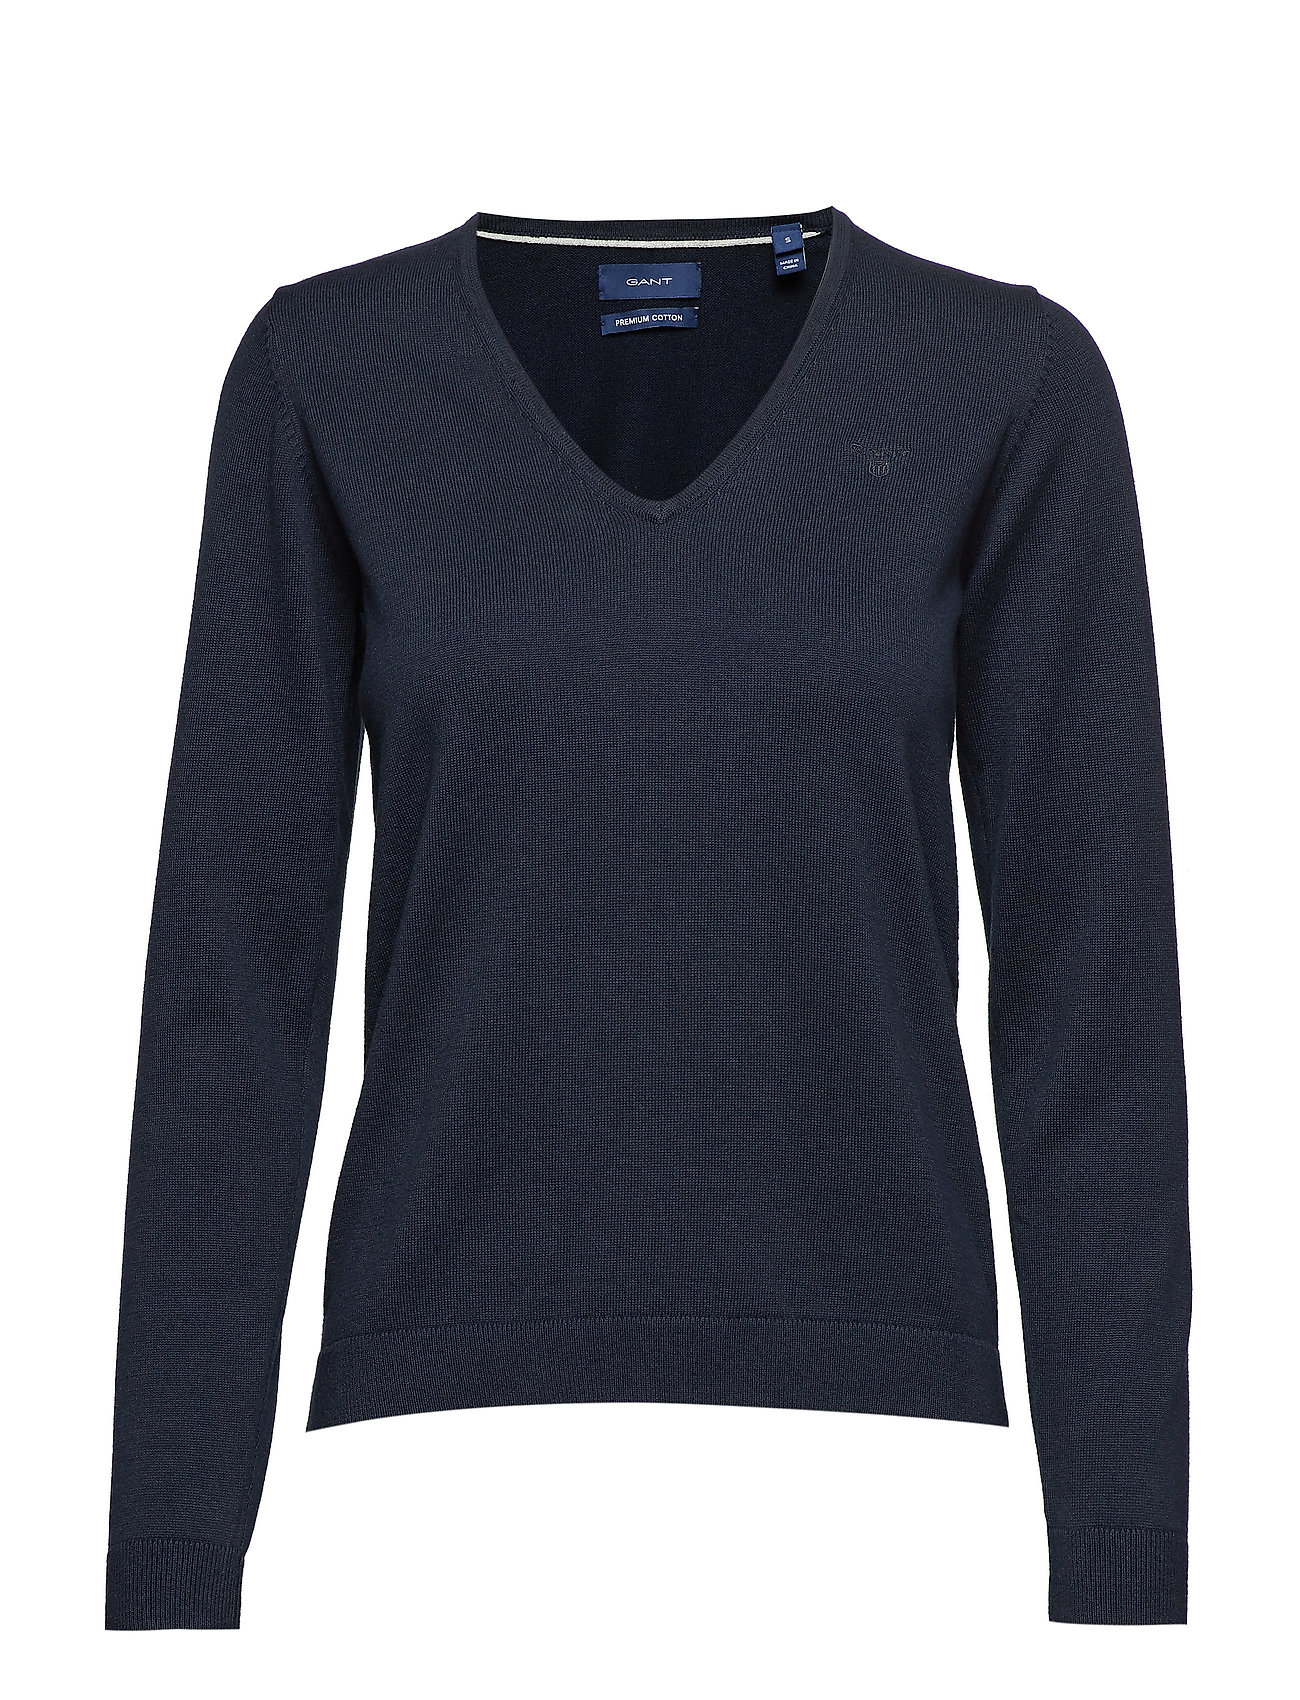 GANT LT WT COTTON V-NECK